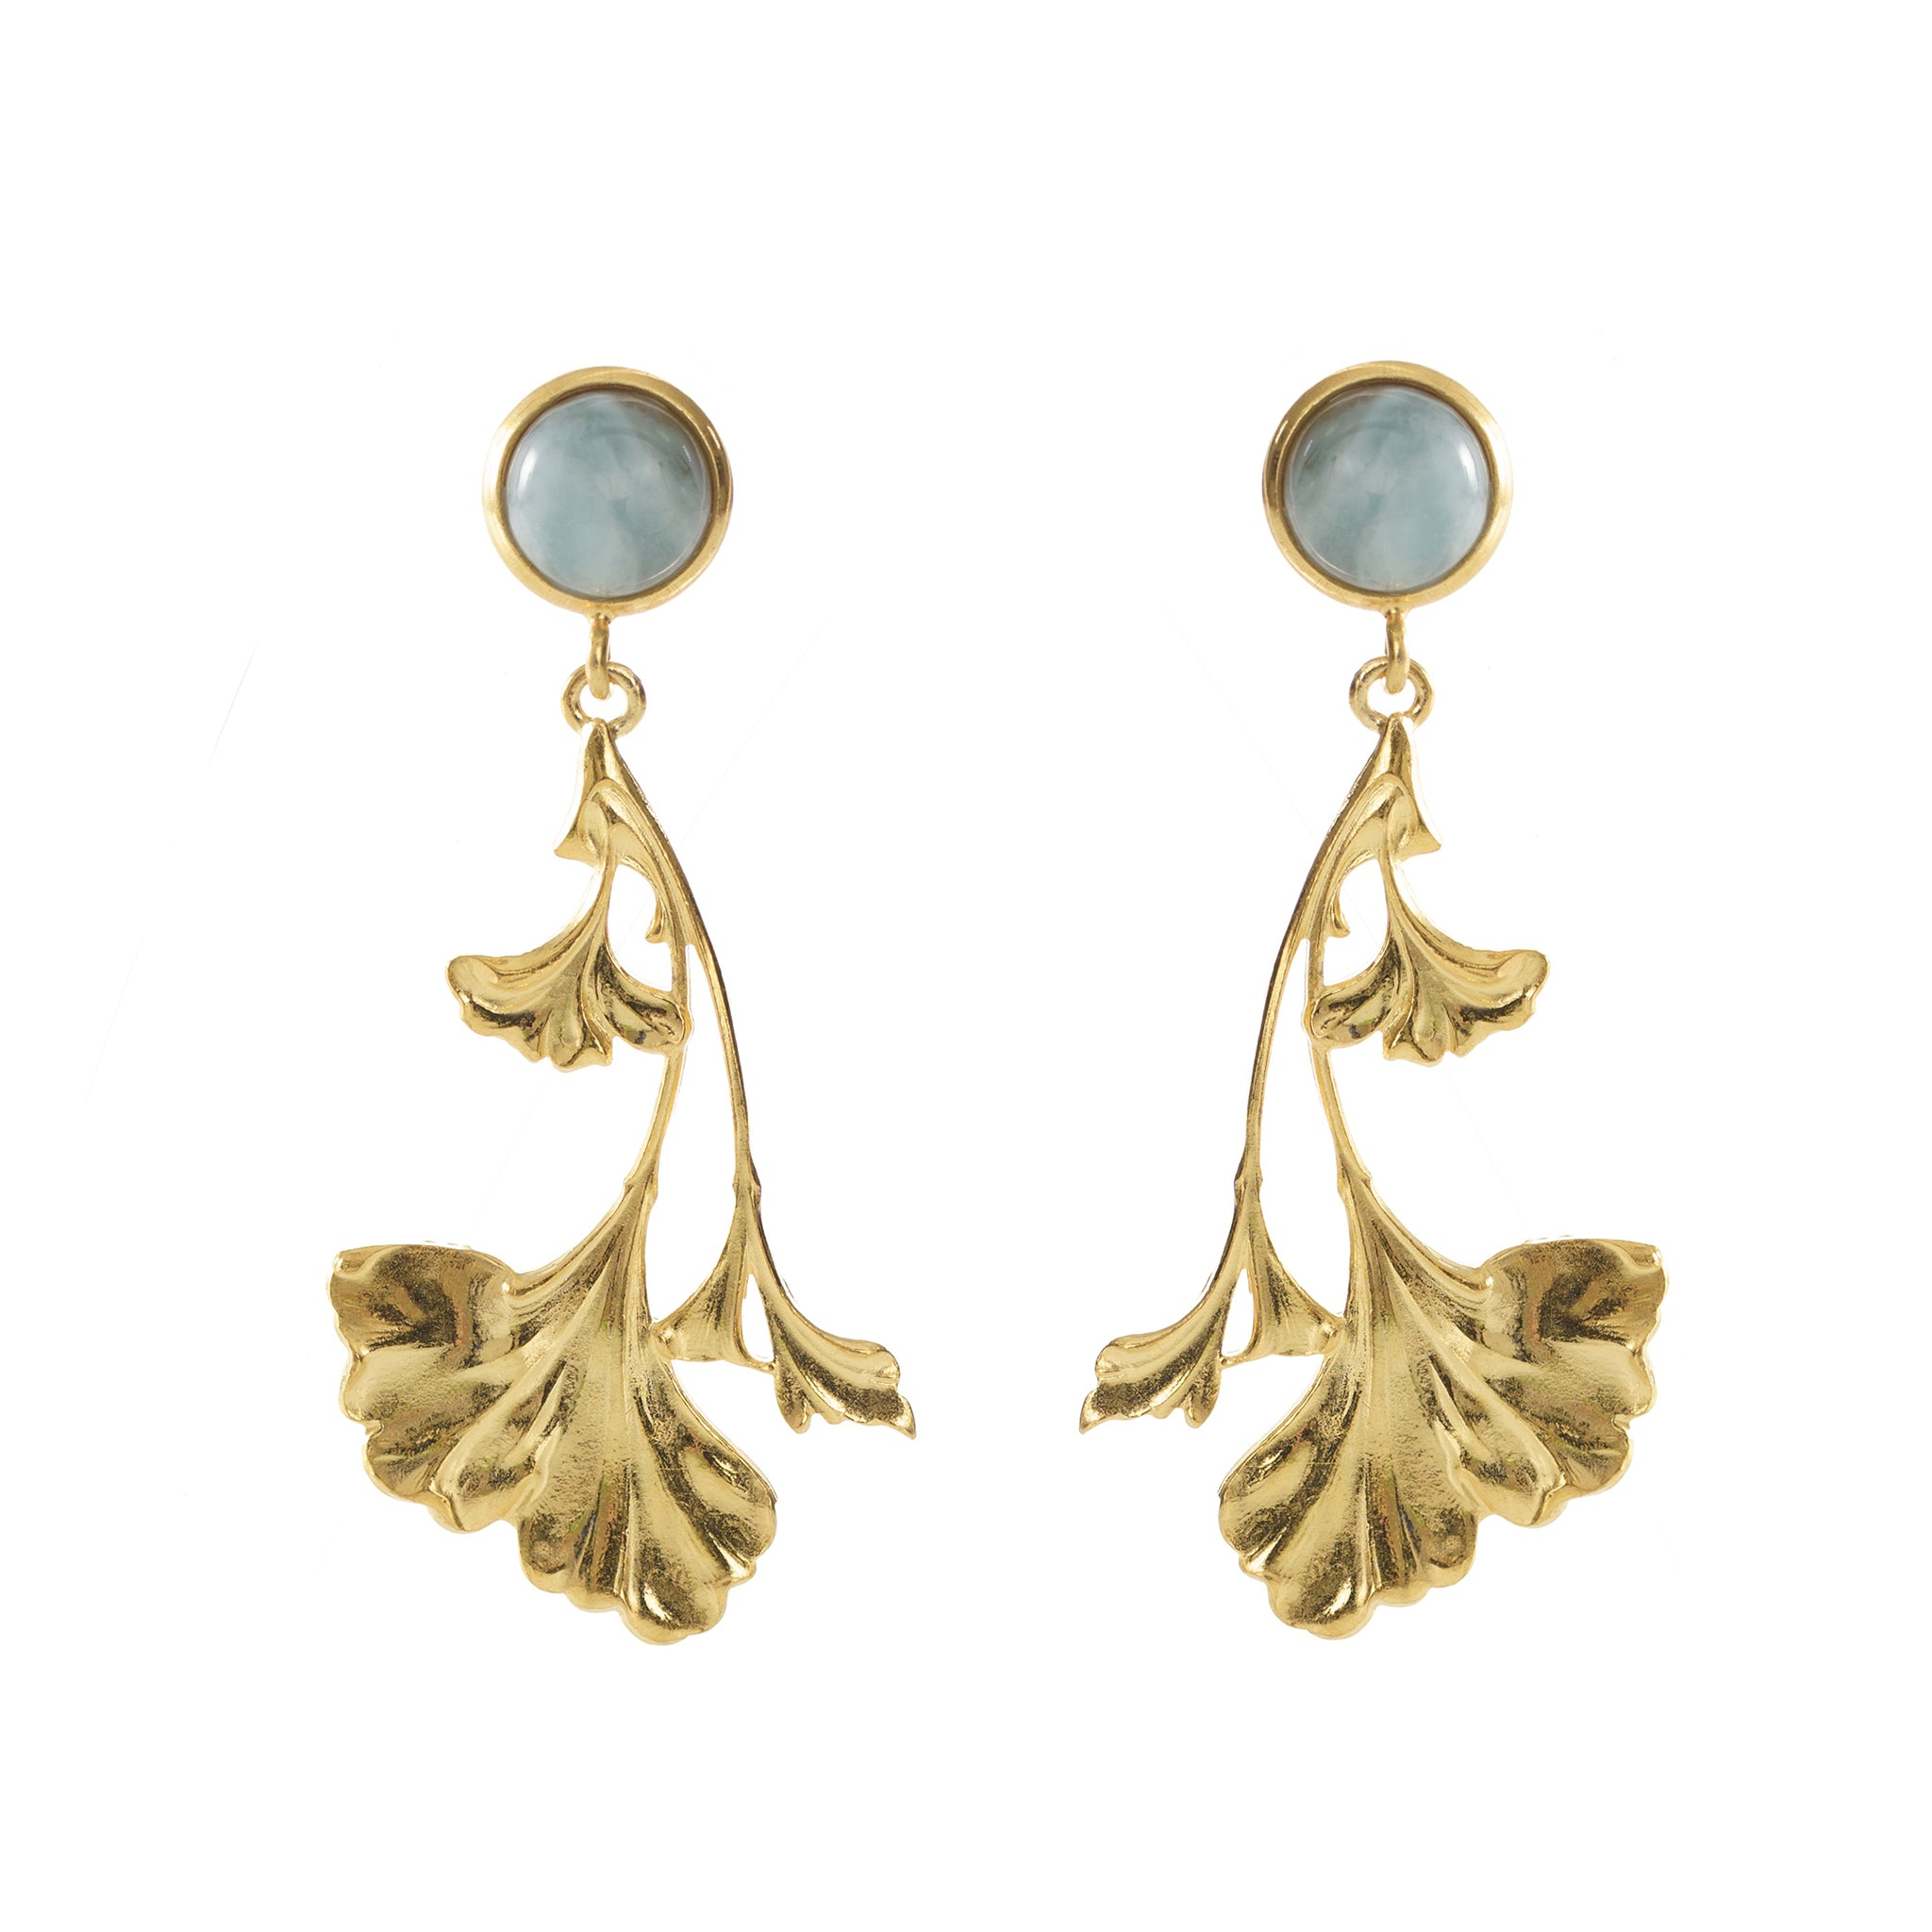 DAHLIA Earrings Gold-Plated with an Amazonite cabochon